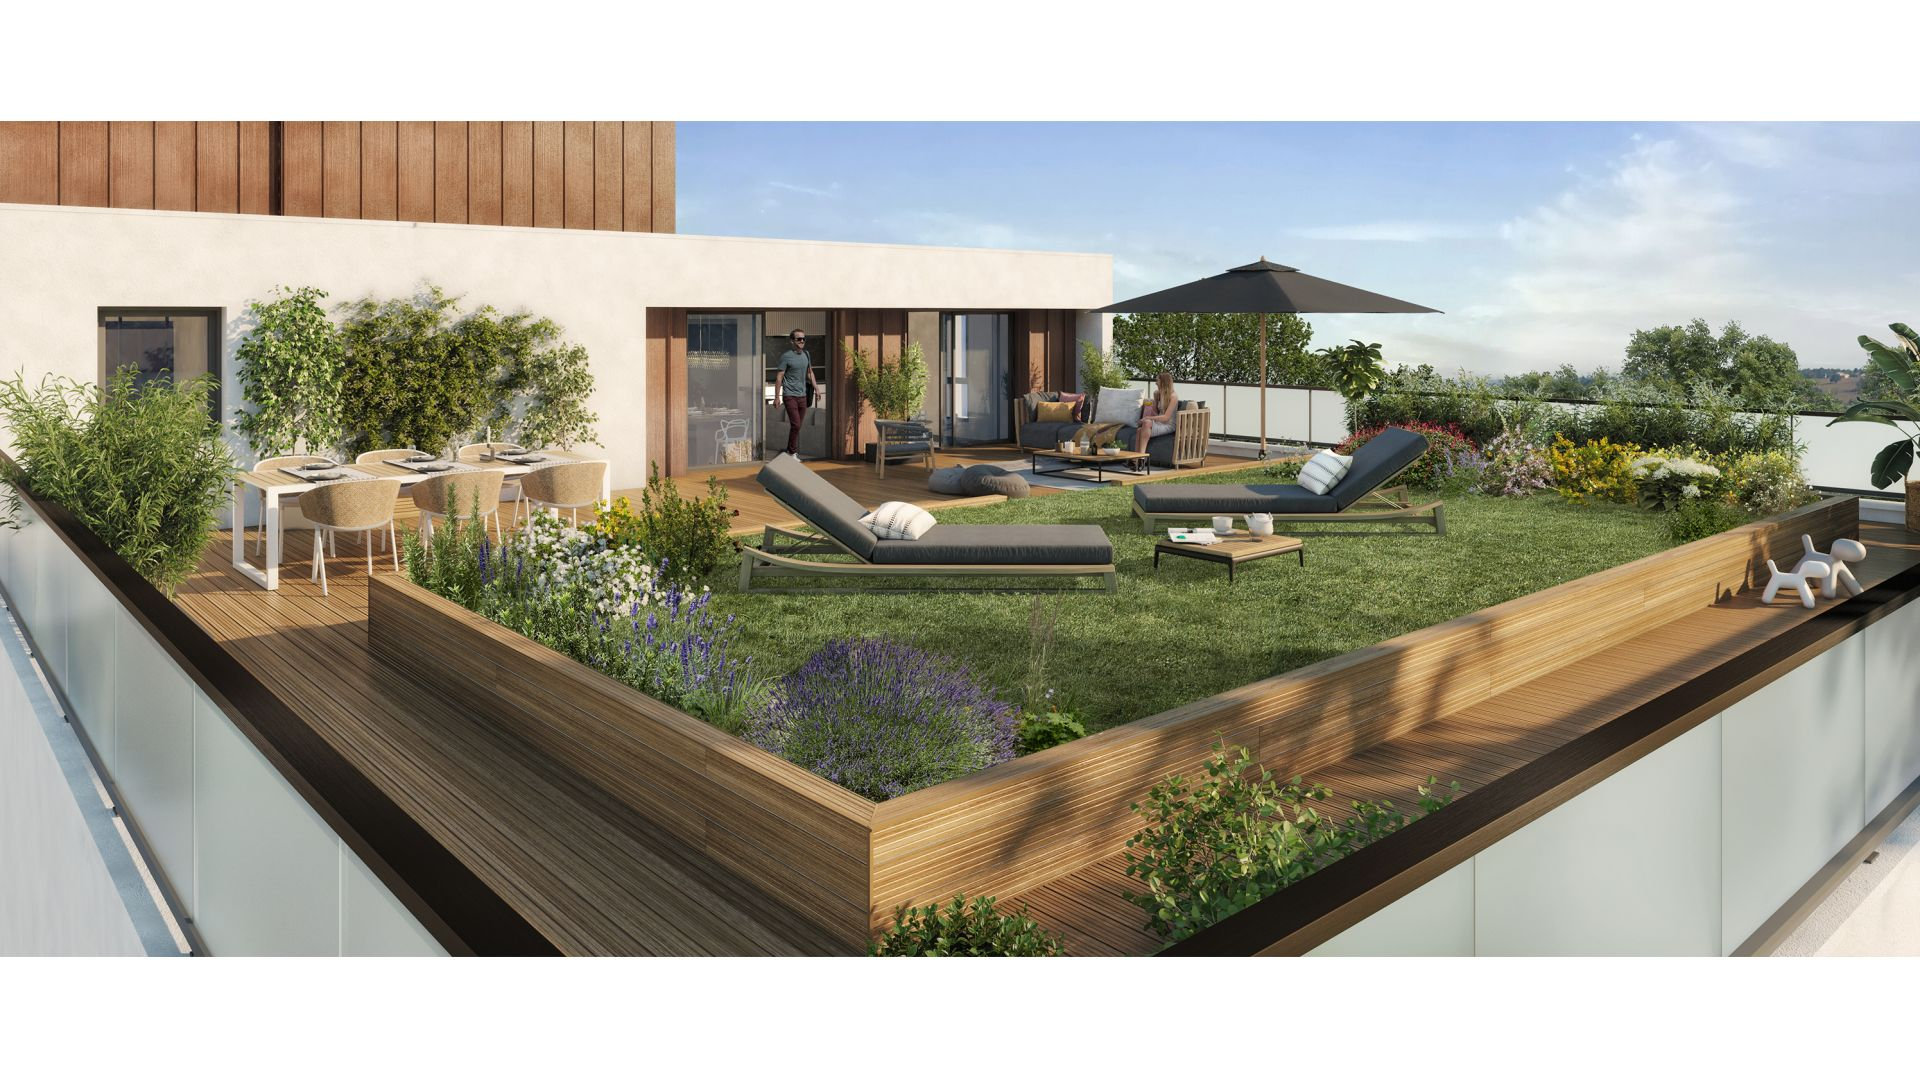 Greencity Immobilier - Grand Horizon - achat appartements du T2 au T4 duplex - Toulouse - Pech David 31400 - vue terrasse